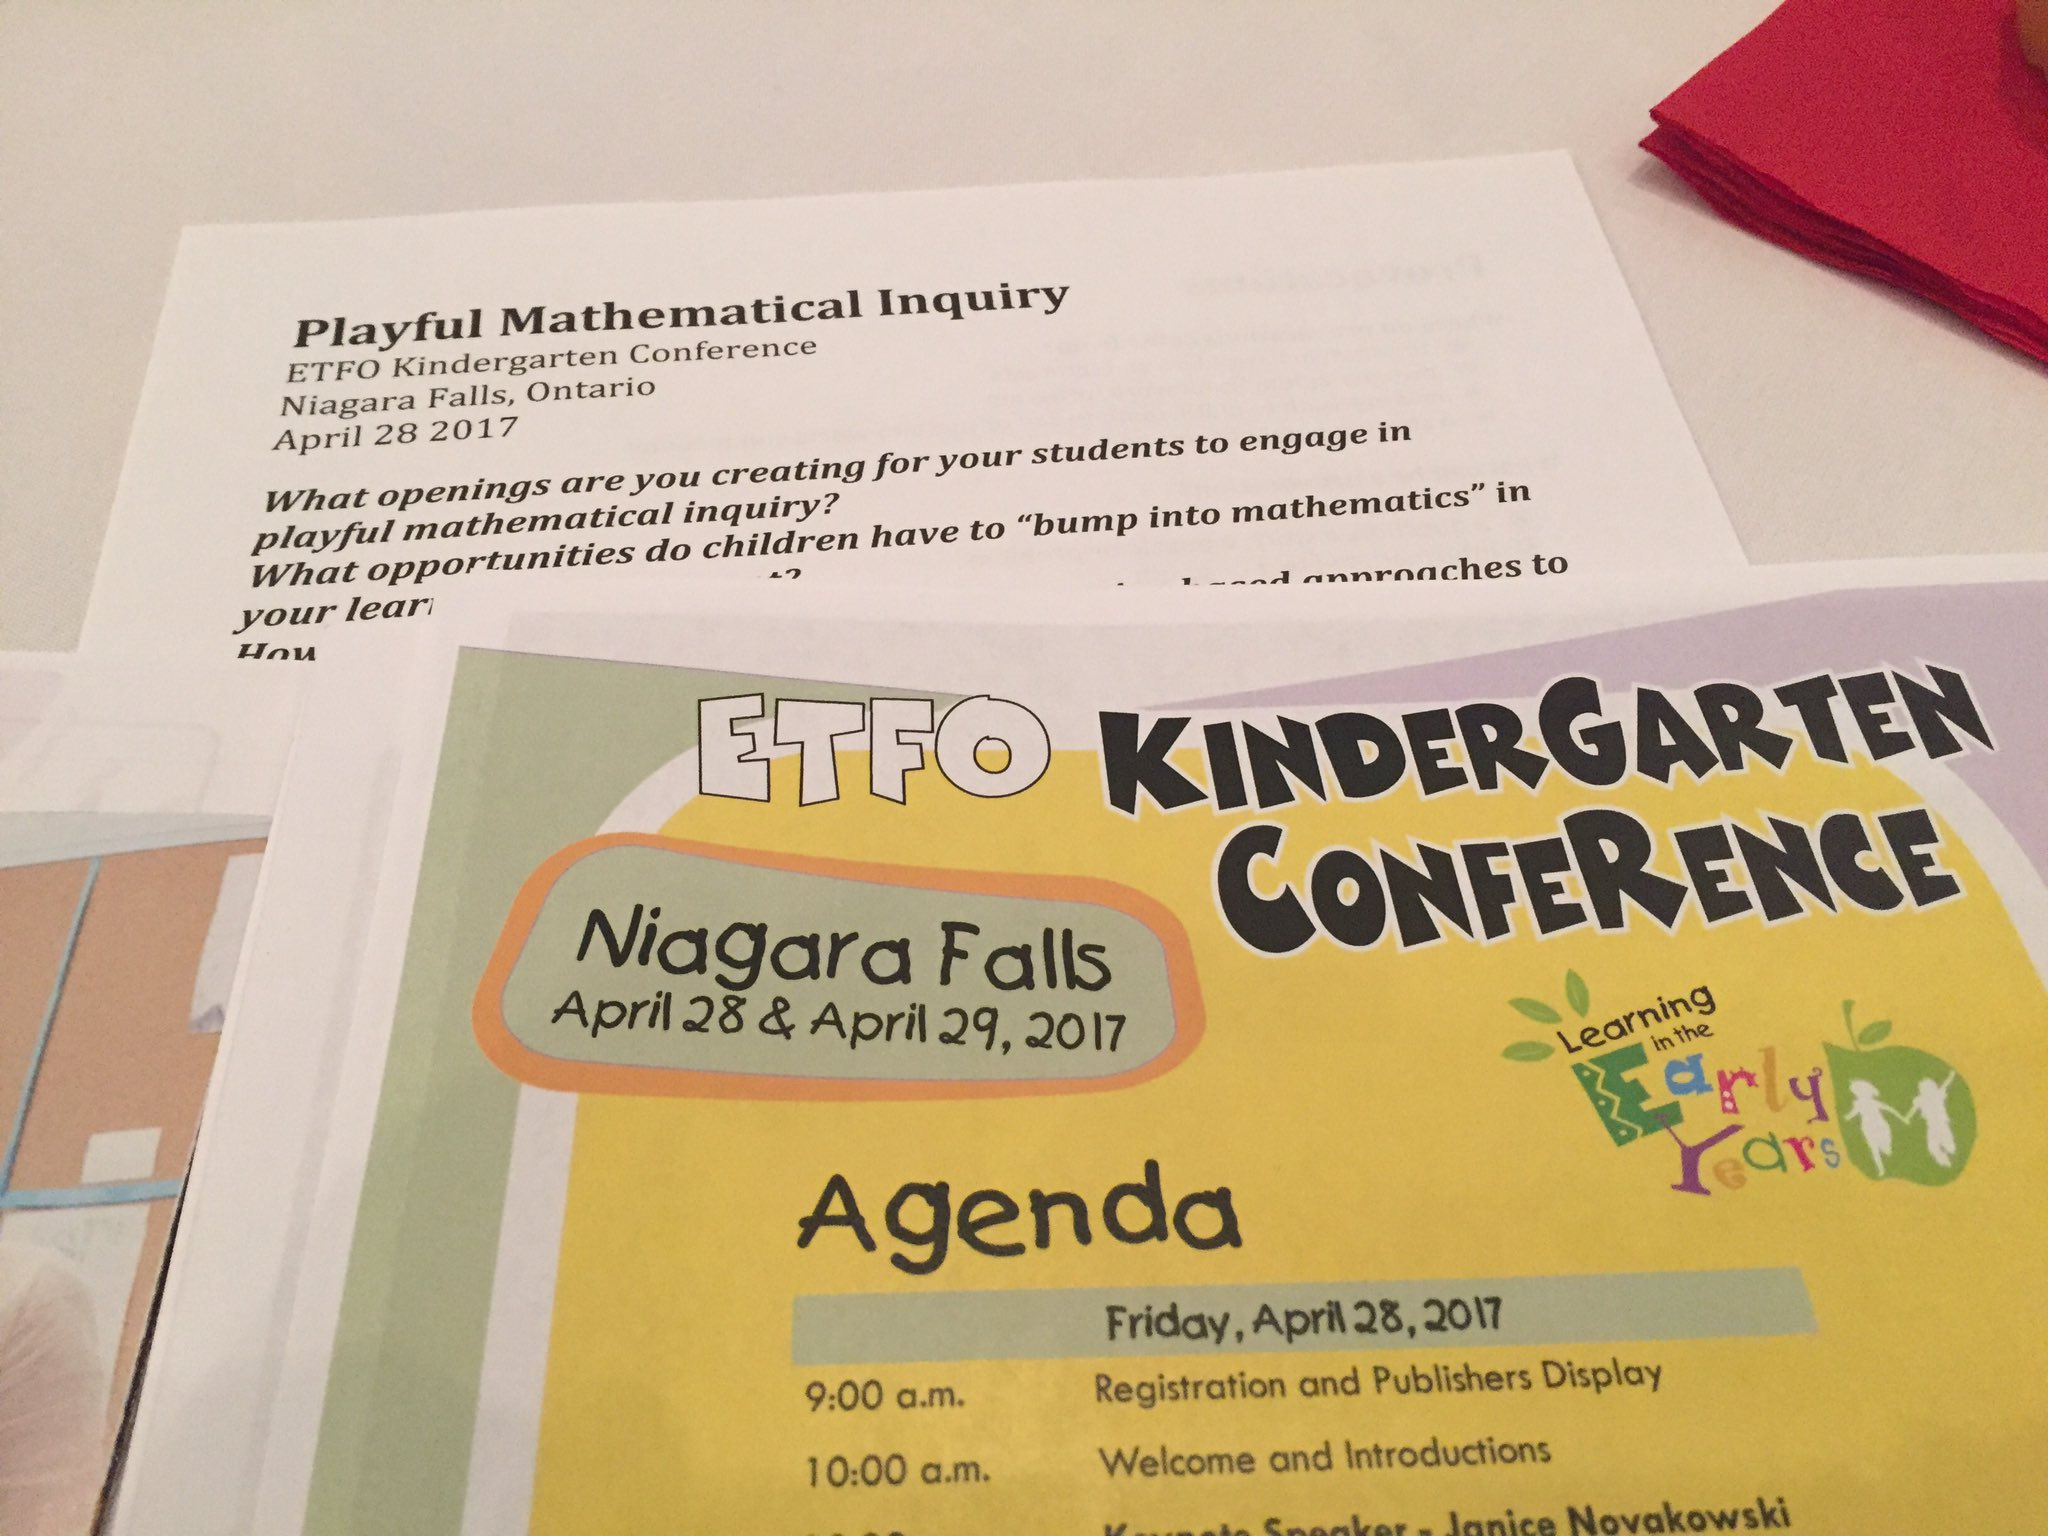 Getting started with Janice Novakowski and Playful Math Inquiry. #etfopley @ETFOPLEYKto3 https://t.co/3GMhV5T796